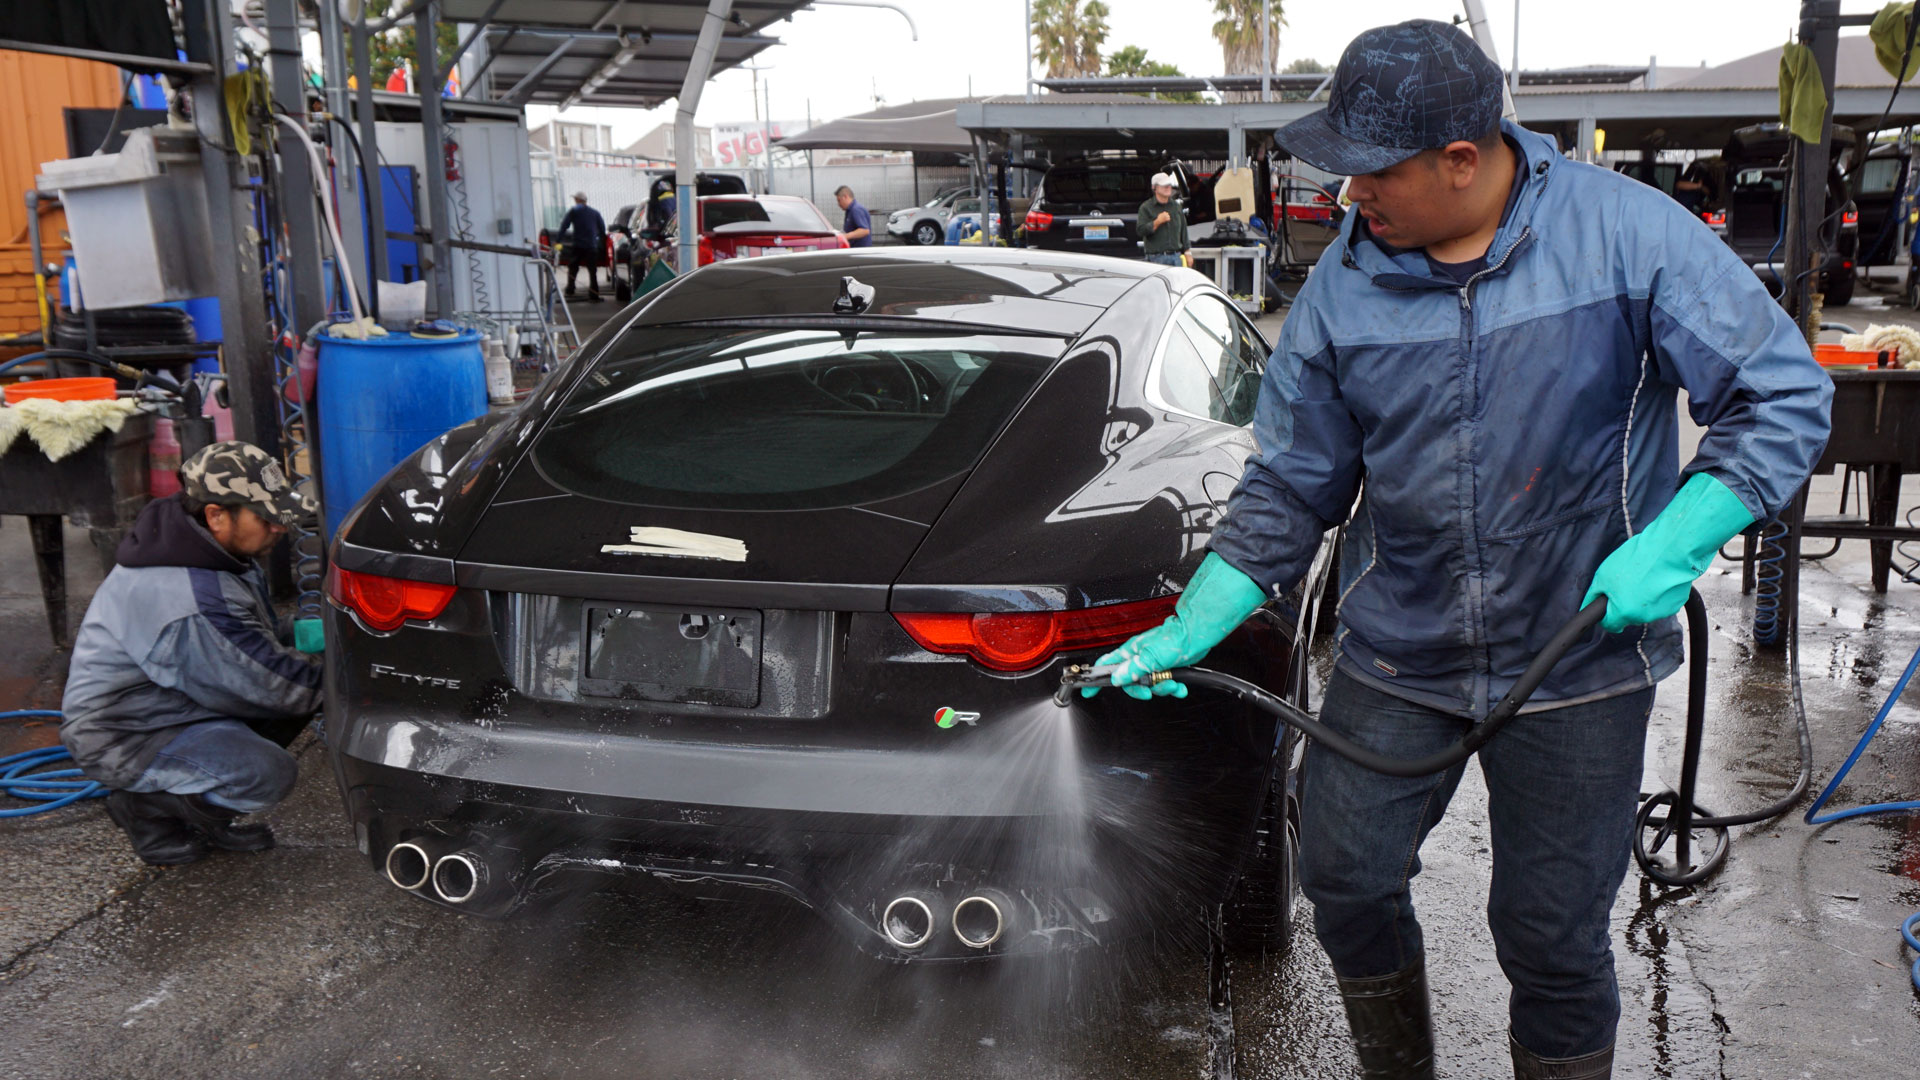 How To Wash Car In A Drought